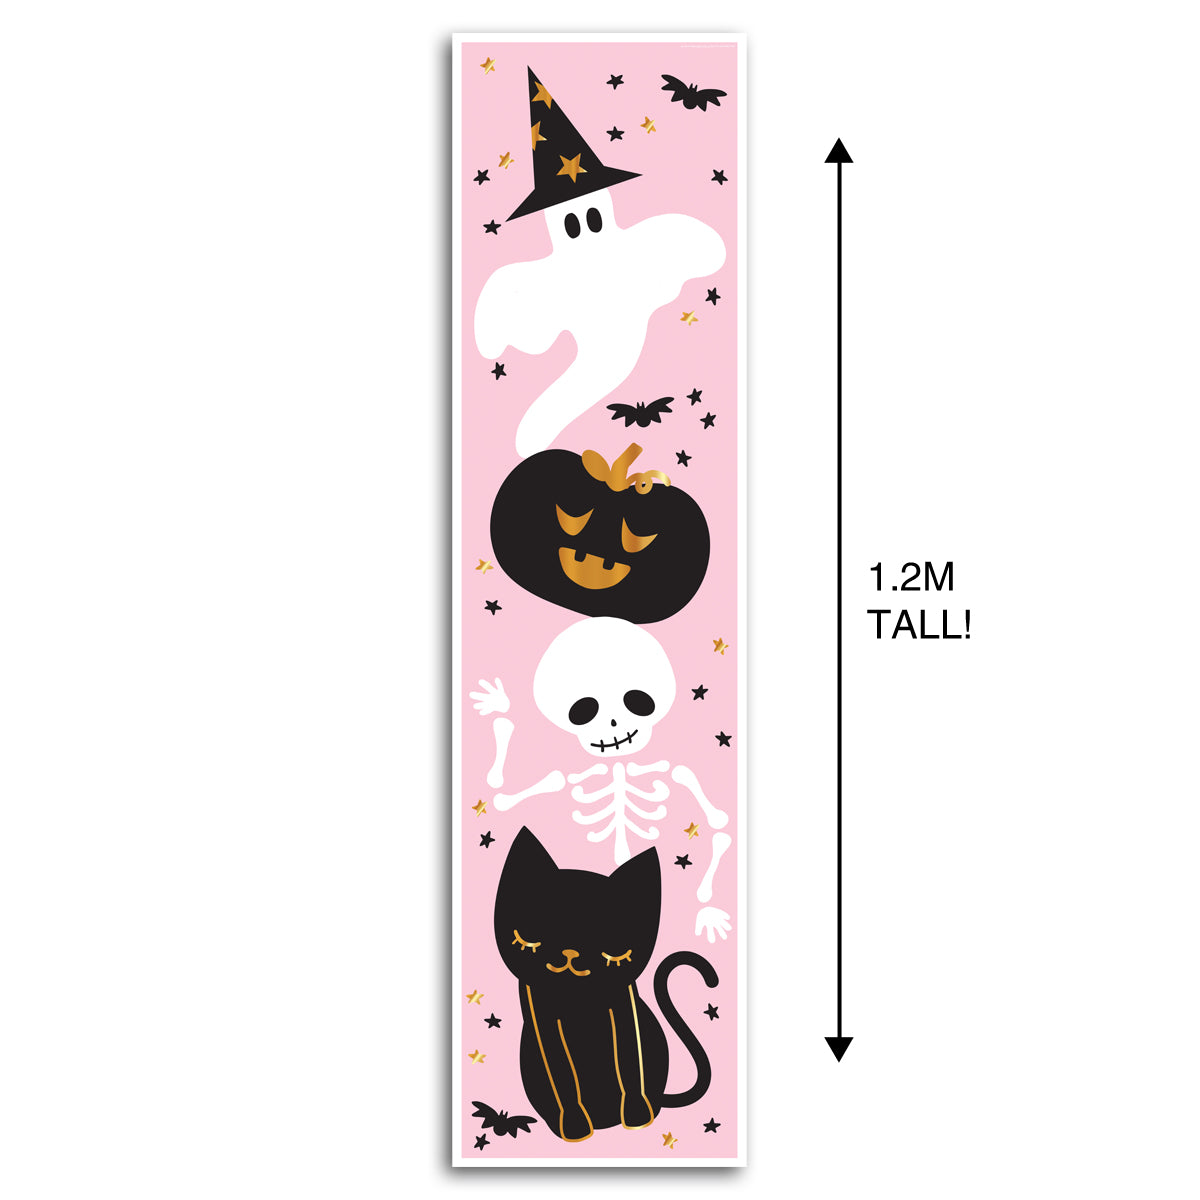 Pink Halloween Characters Portrait Wall & Door Banner Decoration - 1.2m